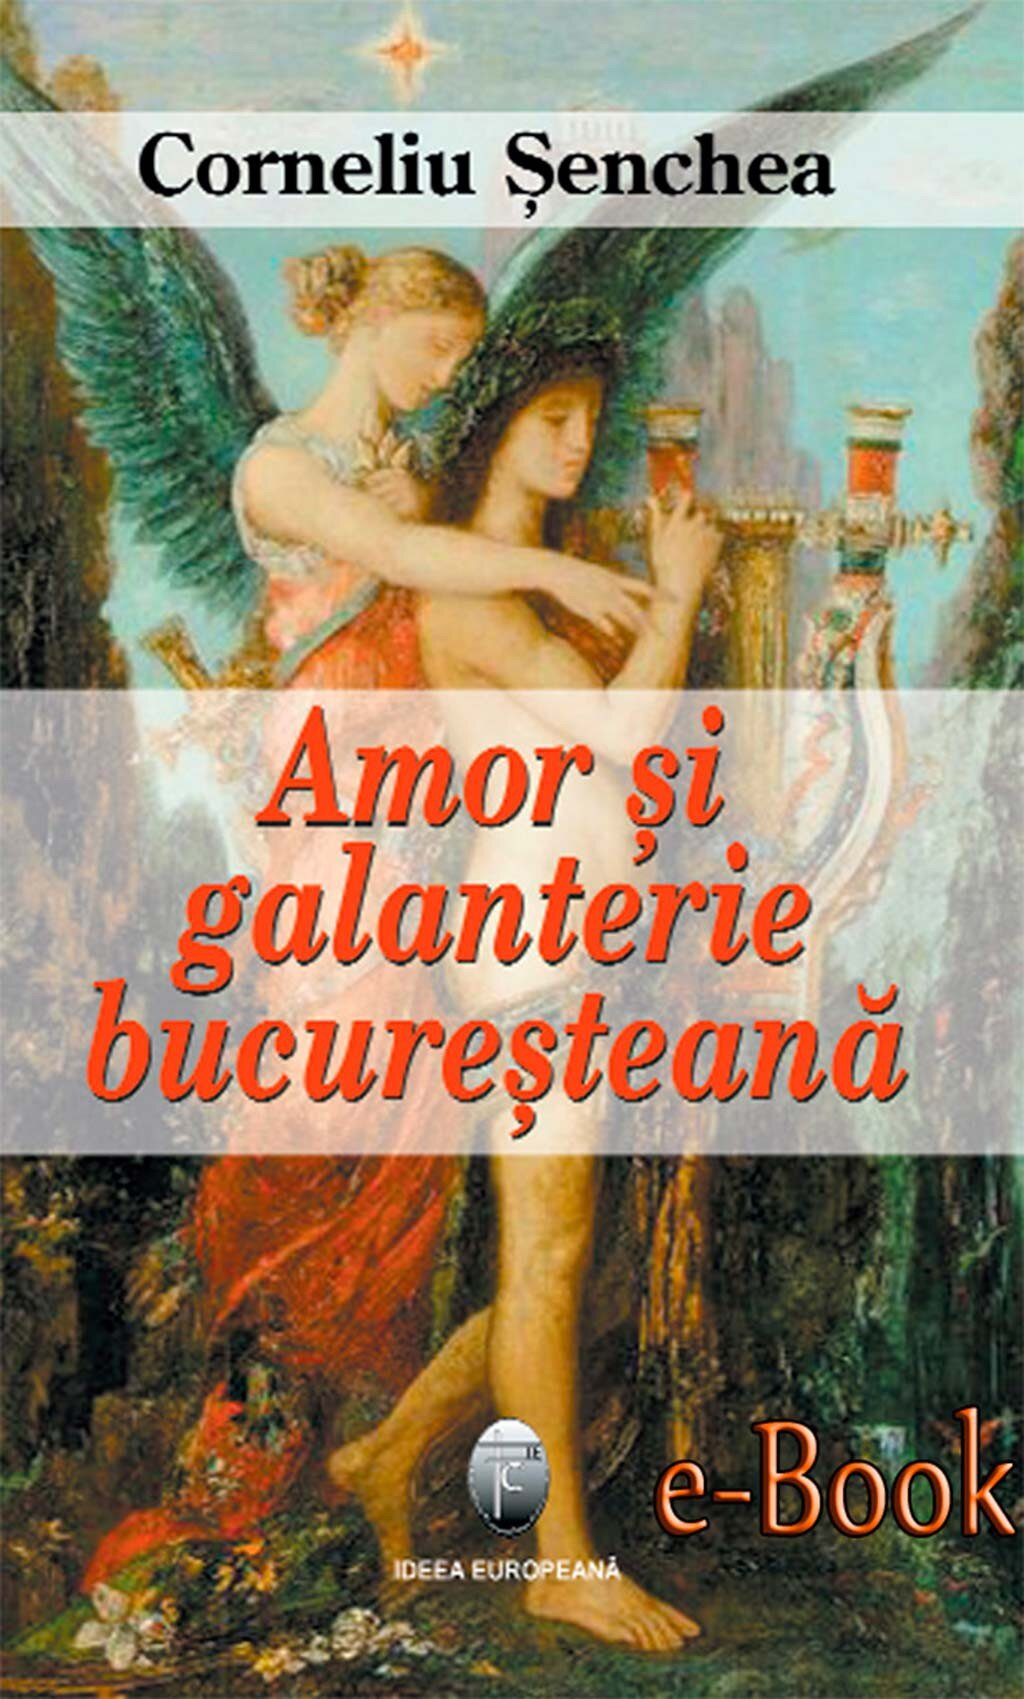 Amor si galanterie bucuresteana (eBook)